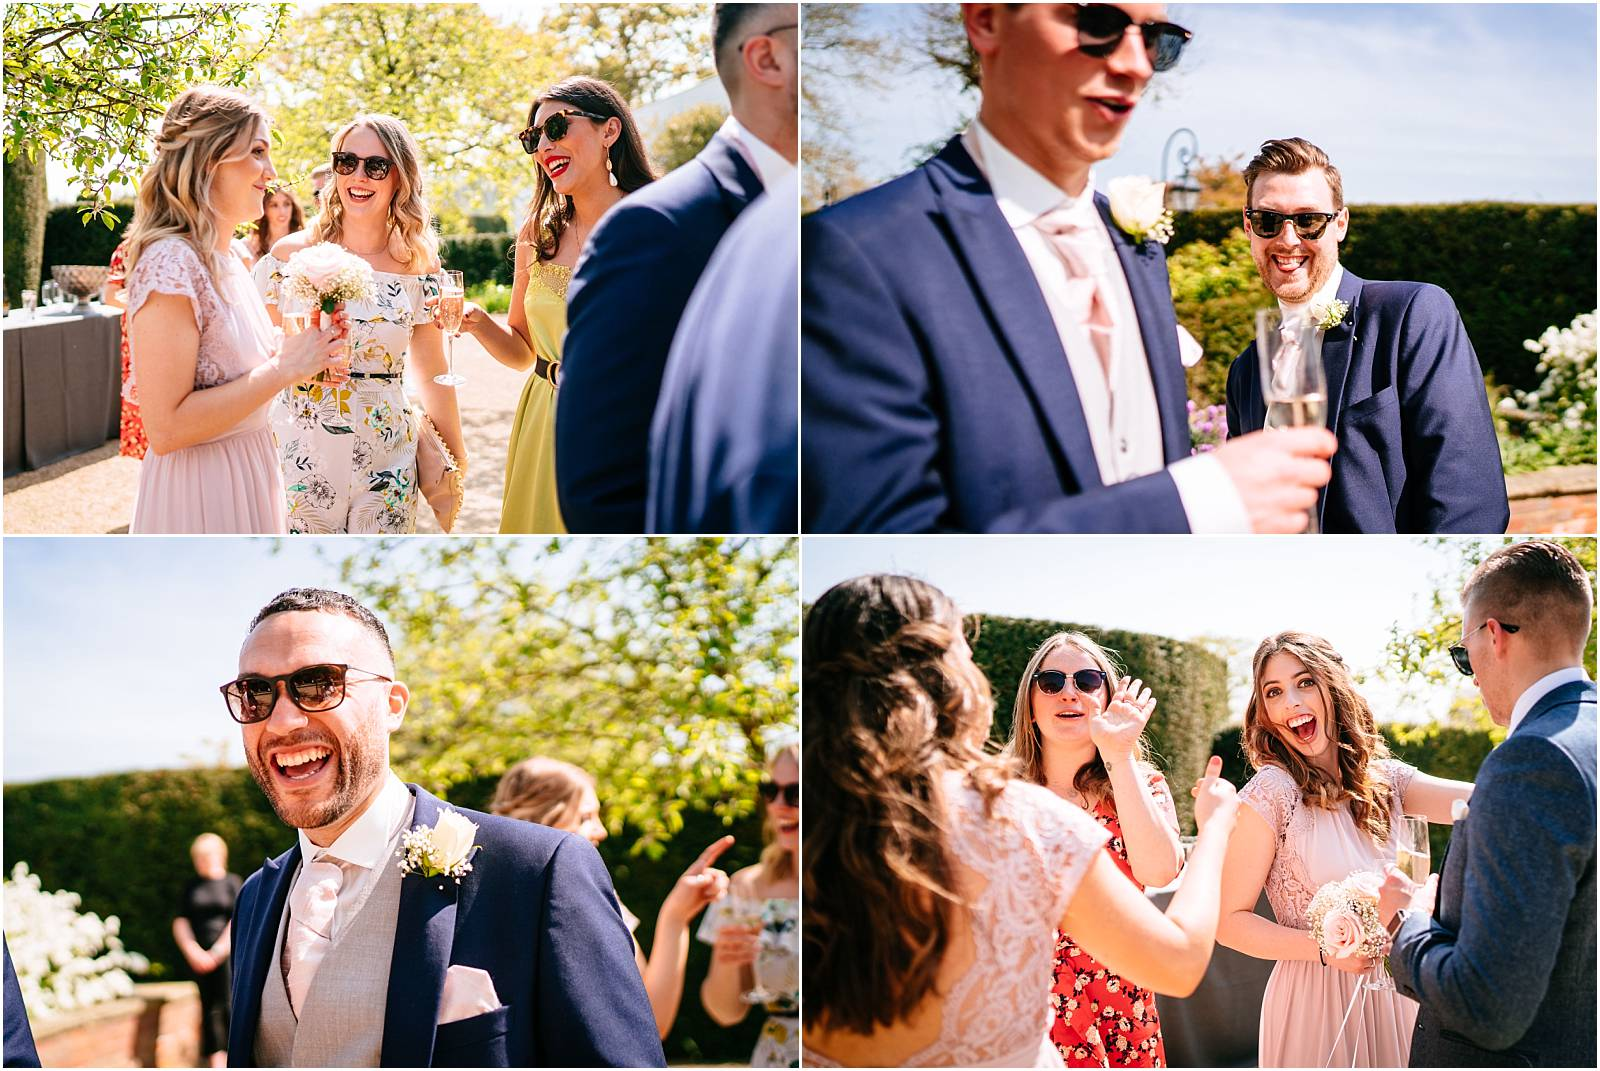 candid photos of guests enjoying themselves